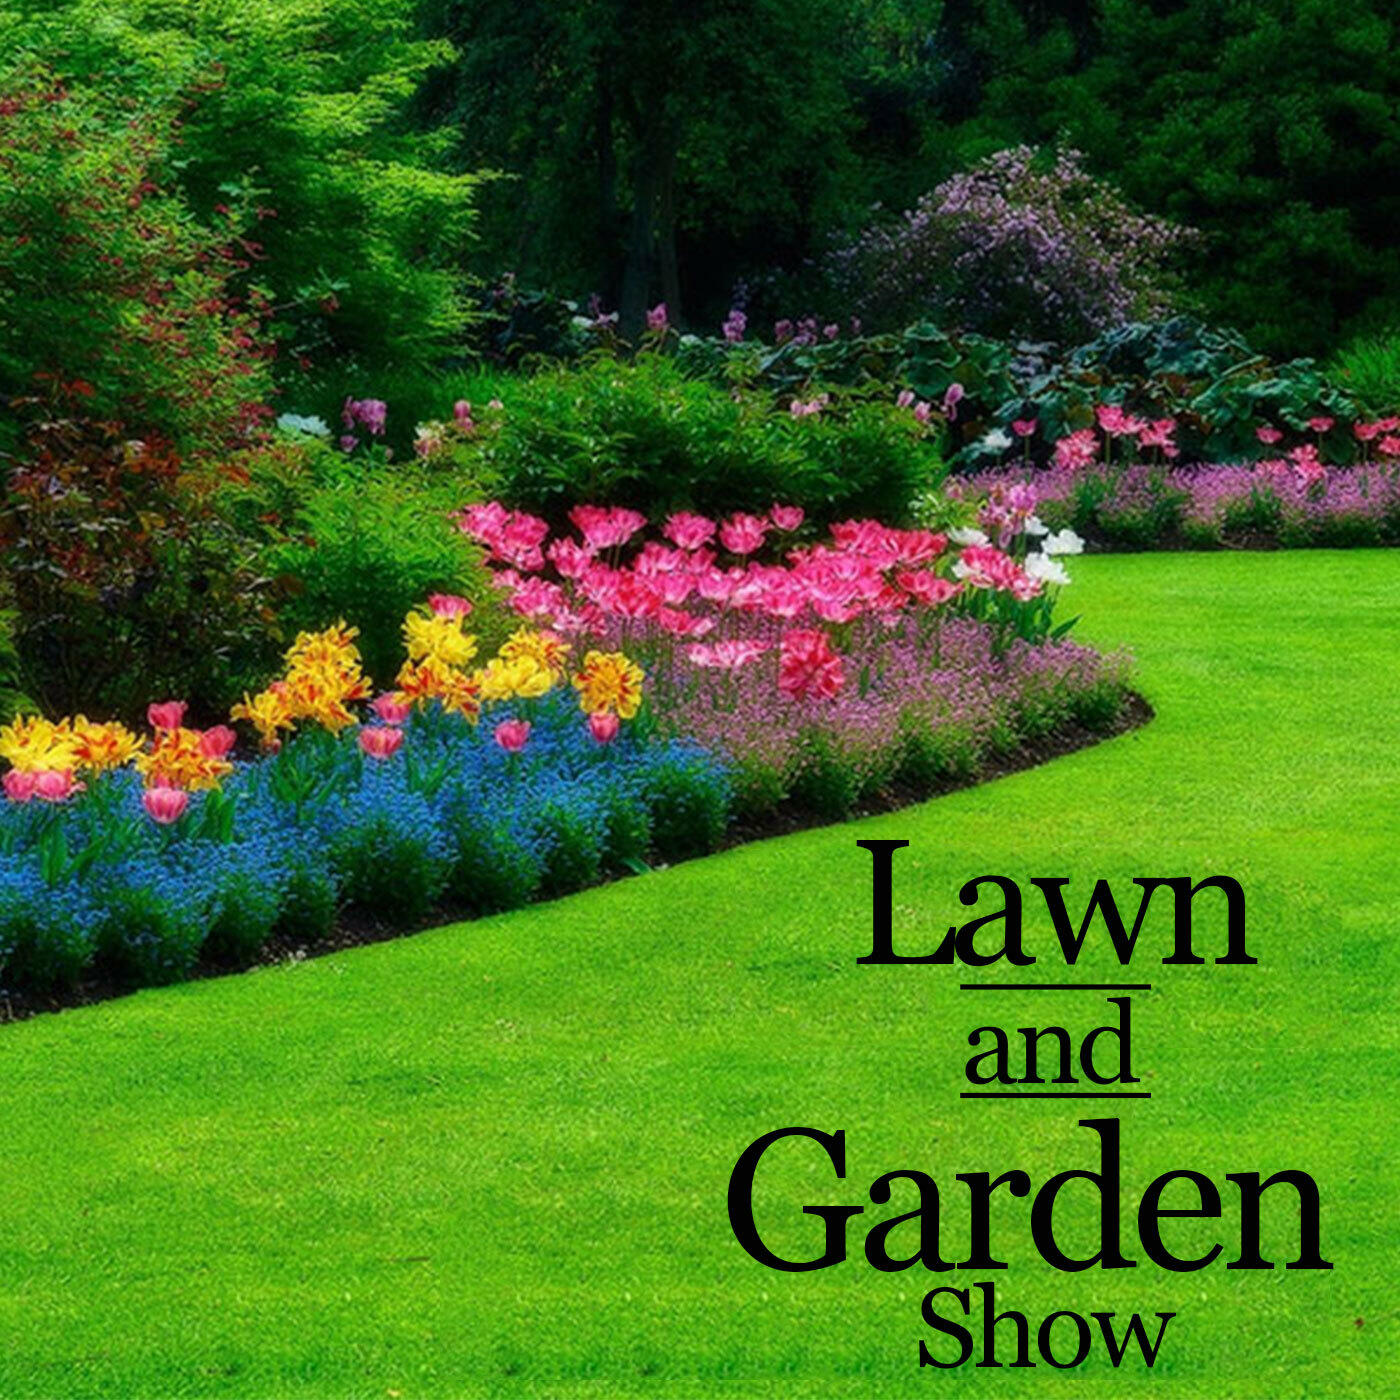 Listen To WOAI Lawn And Garden Show 2 10 18 | The Lawn And Garden Show |  Podcasts | IHeartRadio